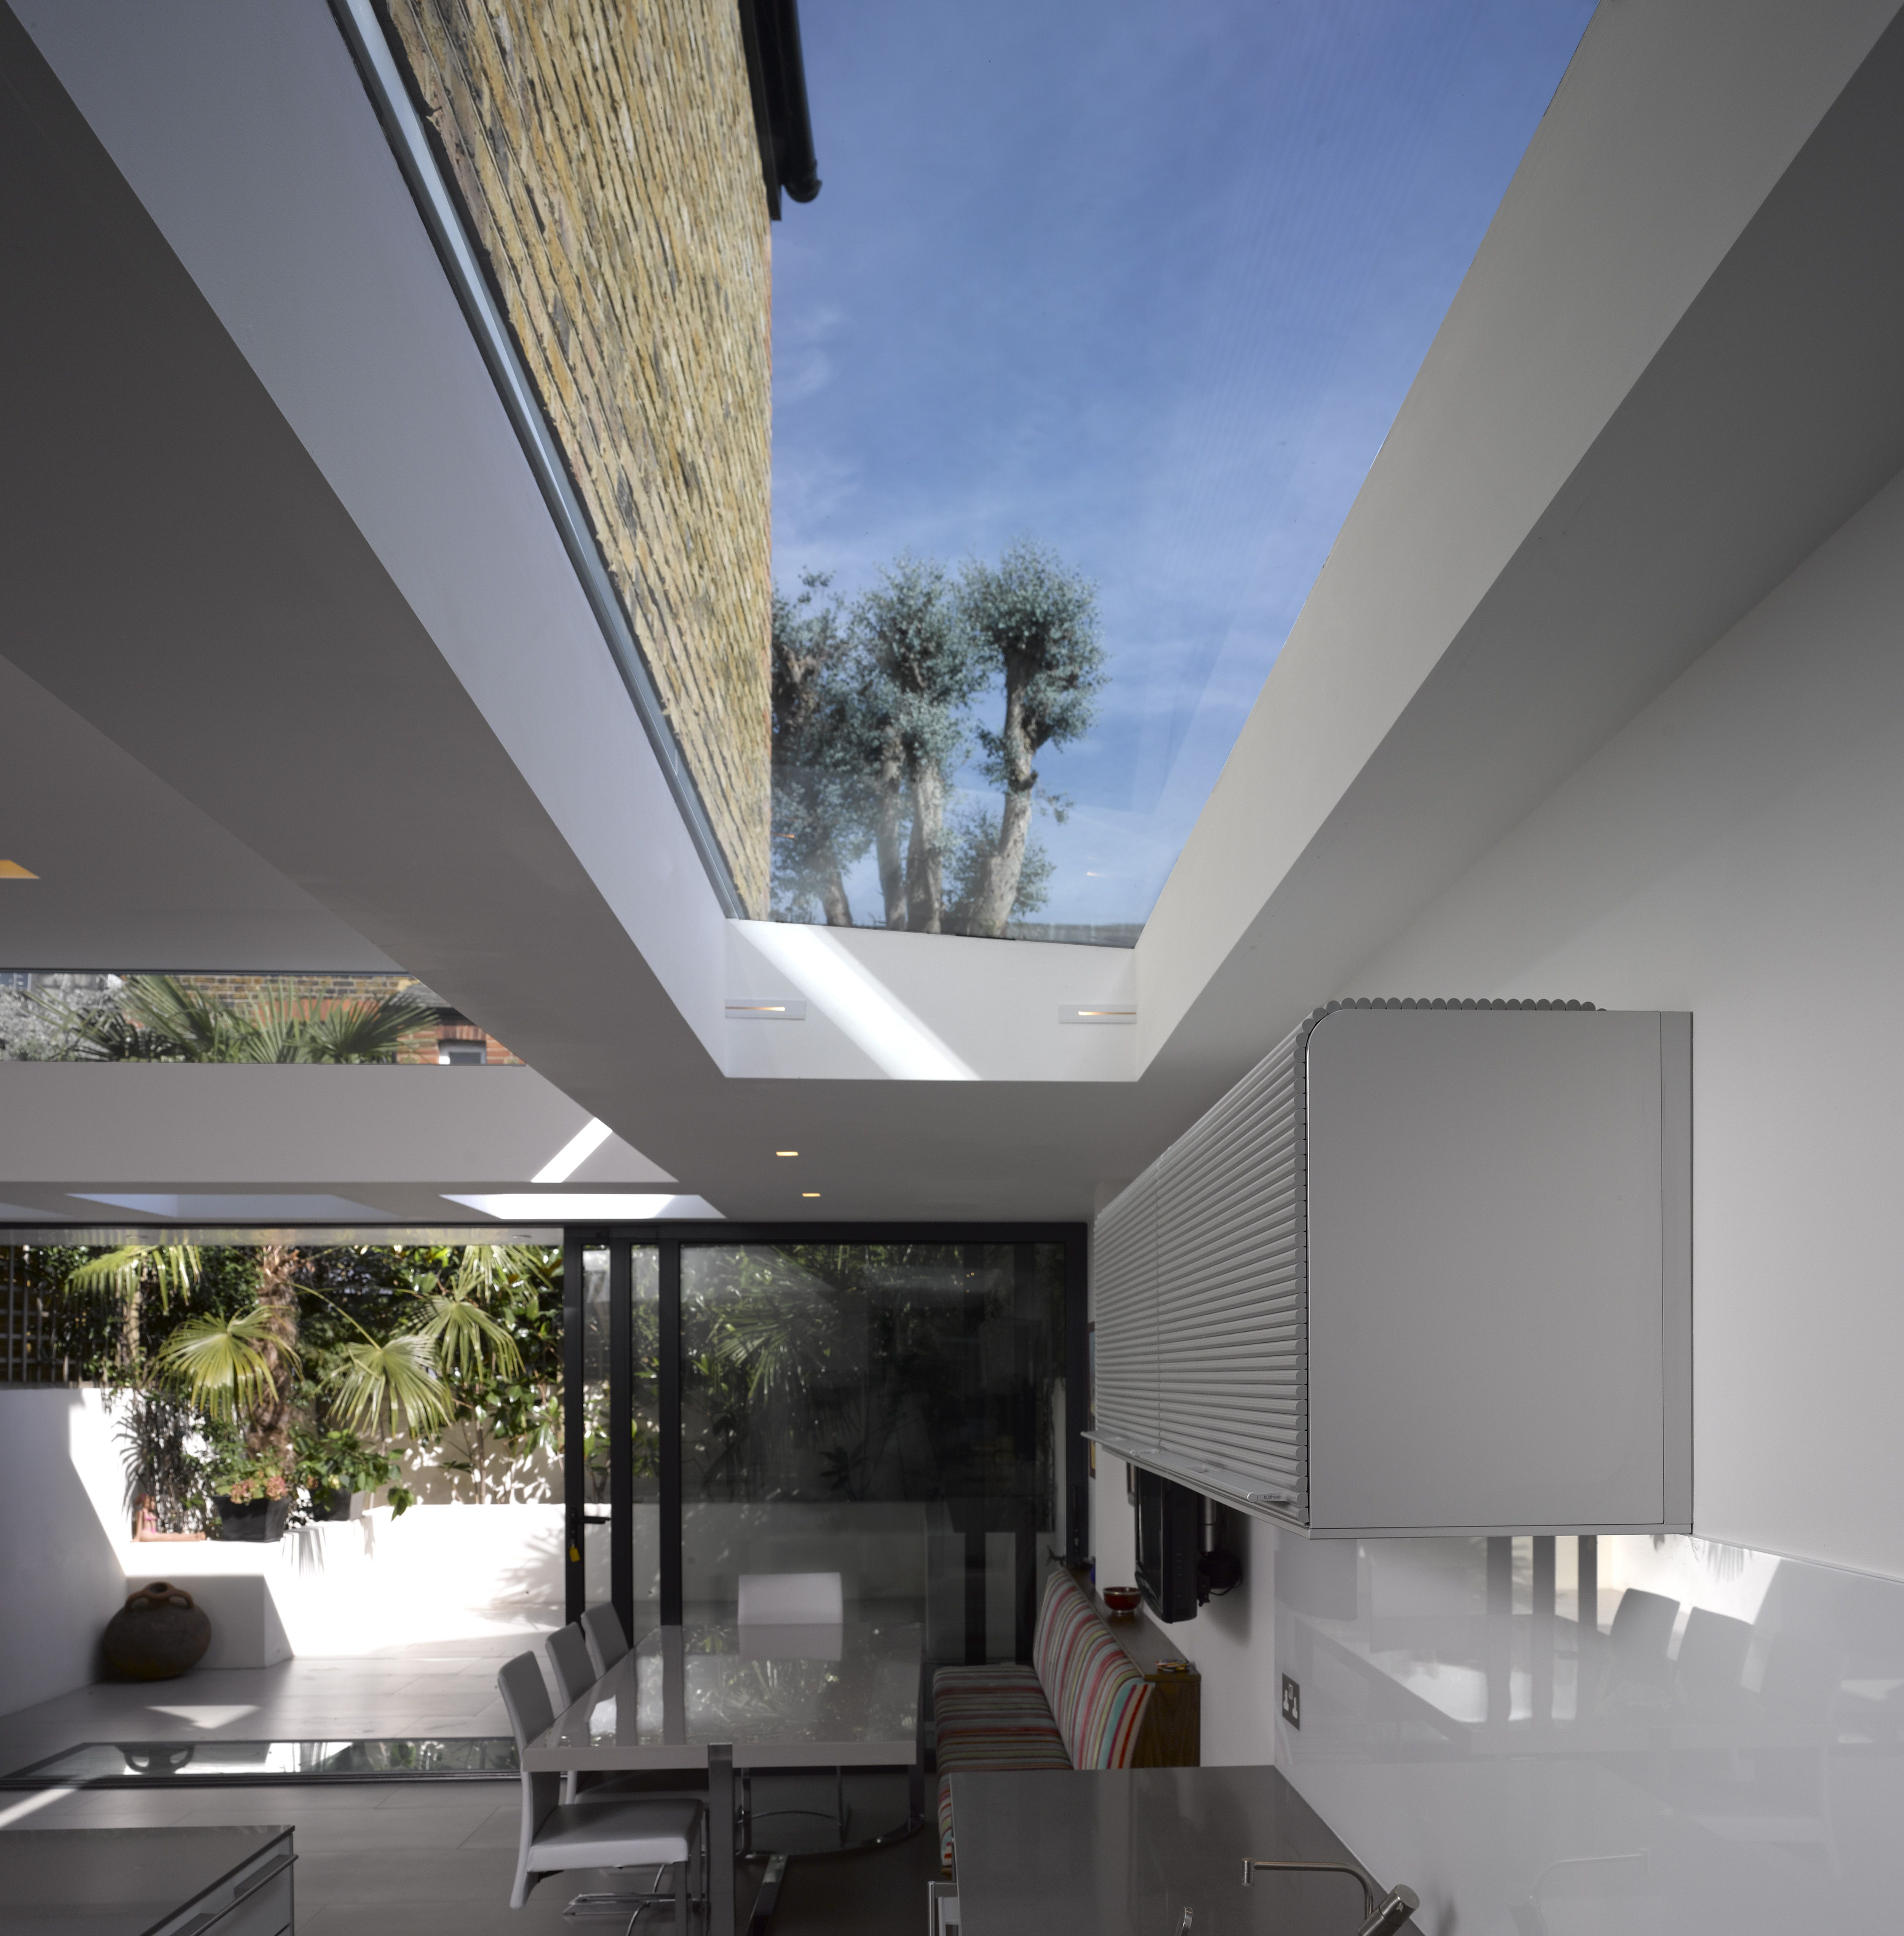 skylight private house london sw6 giles pike architects roof lights. Black Bedroom Furniture Sets. Home Design Ideas